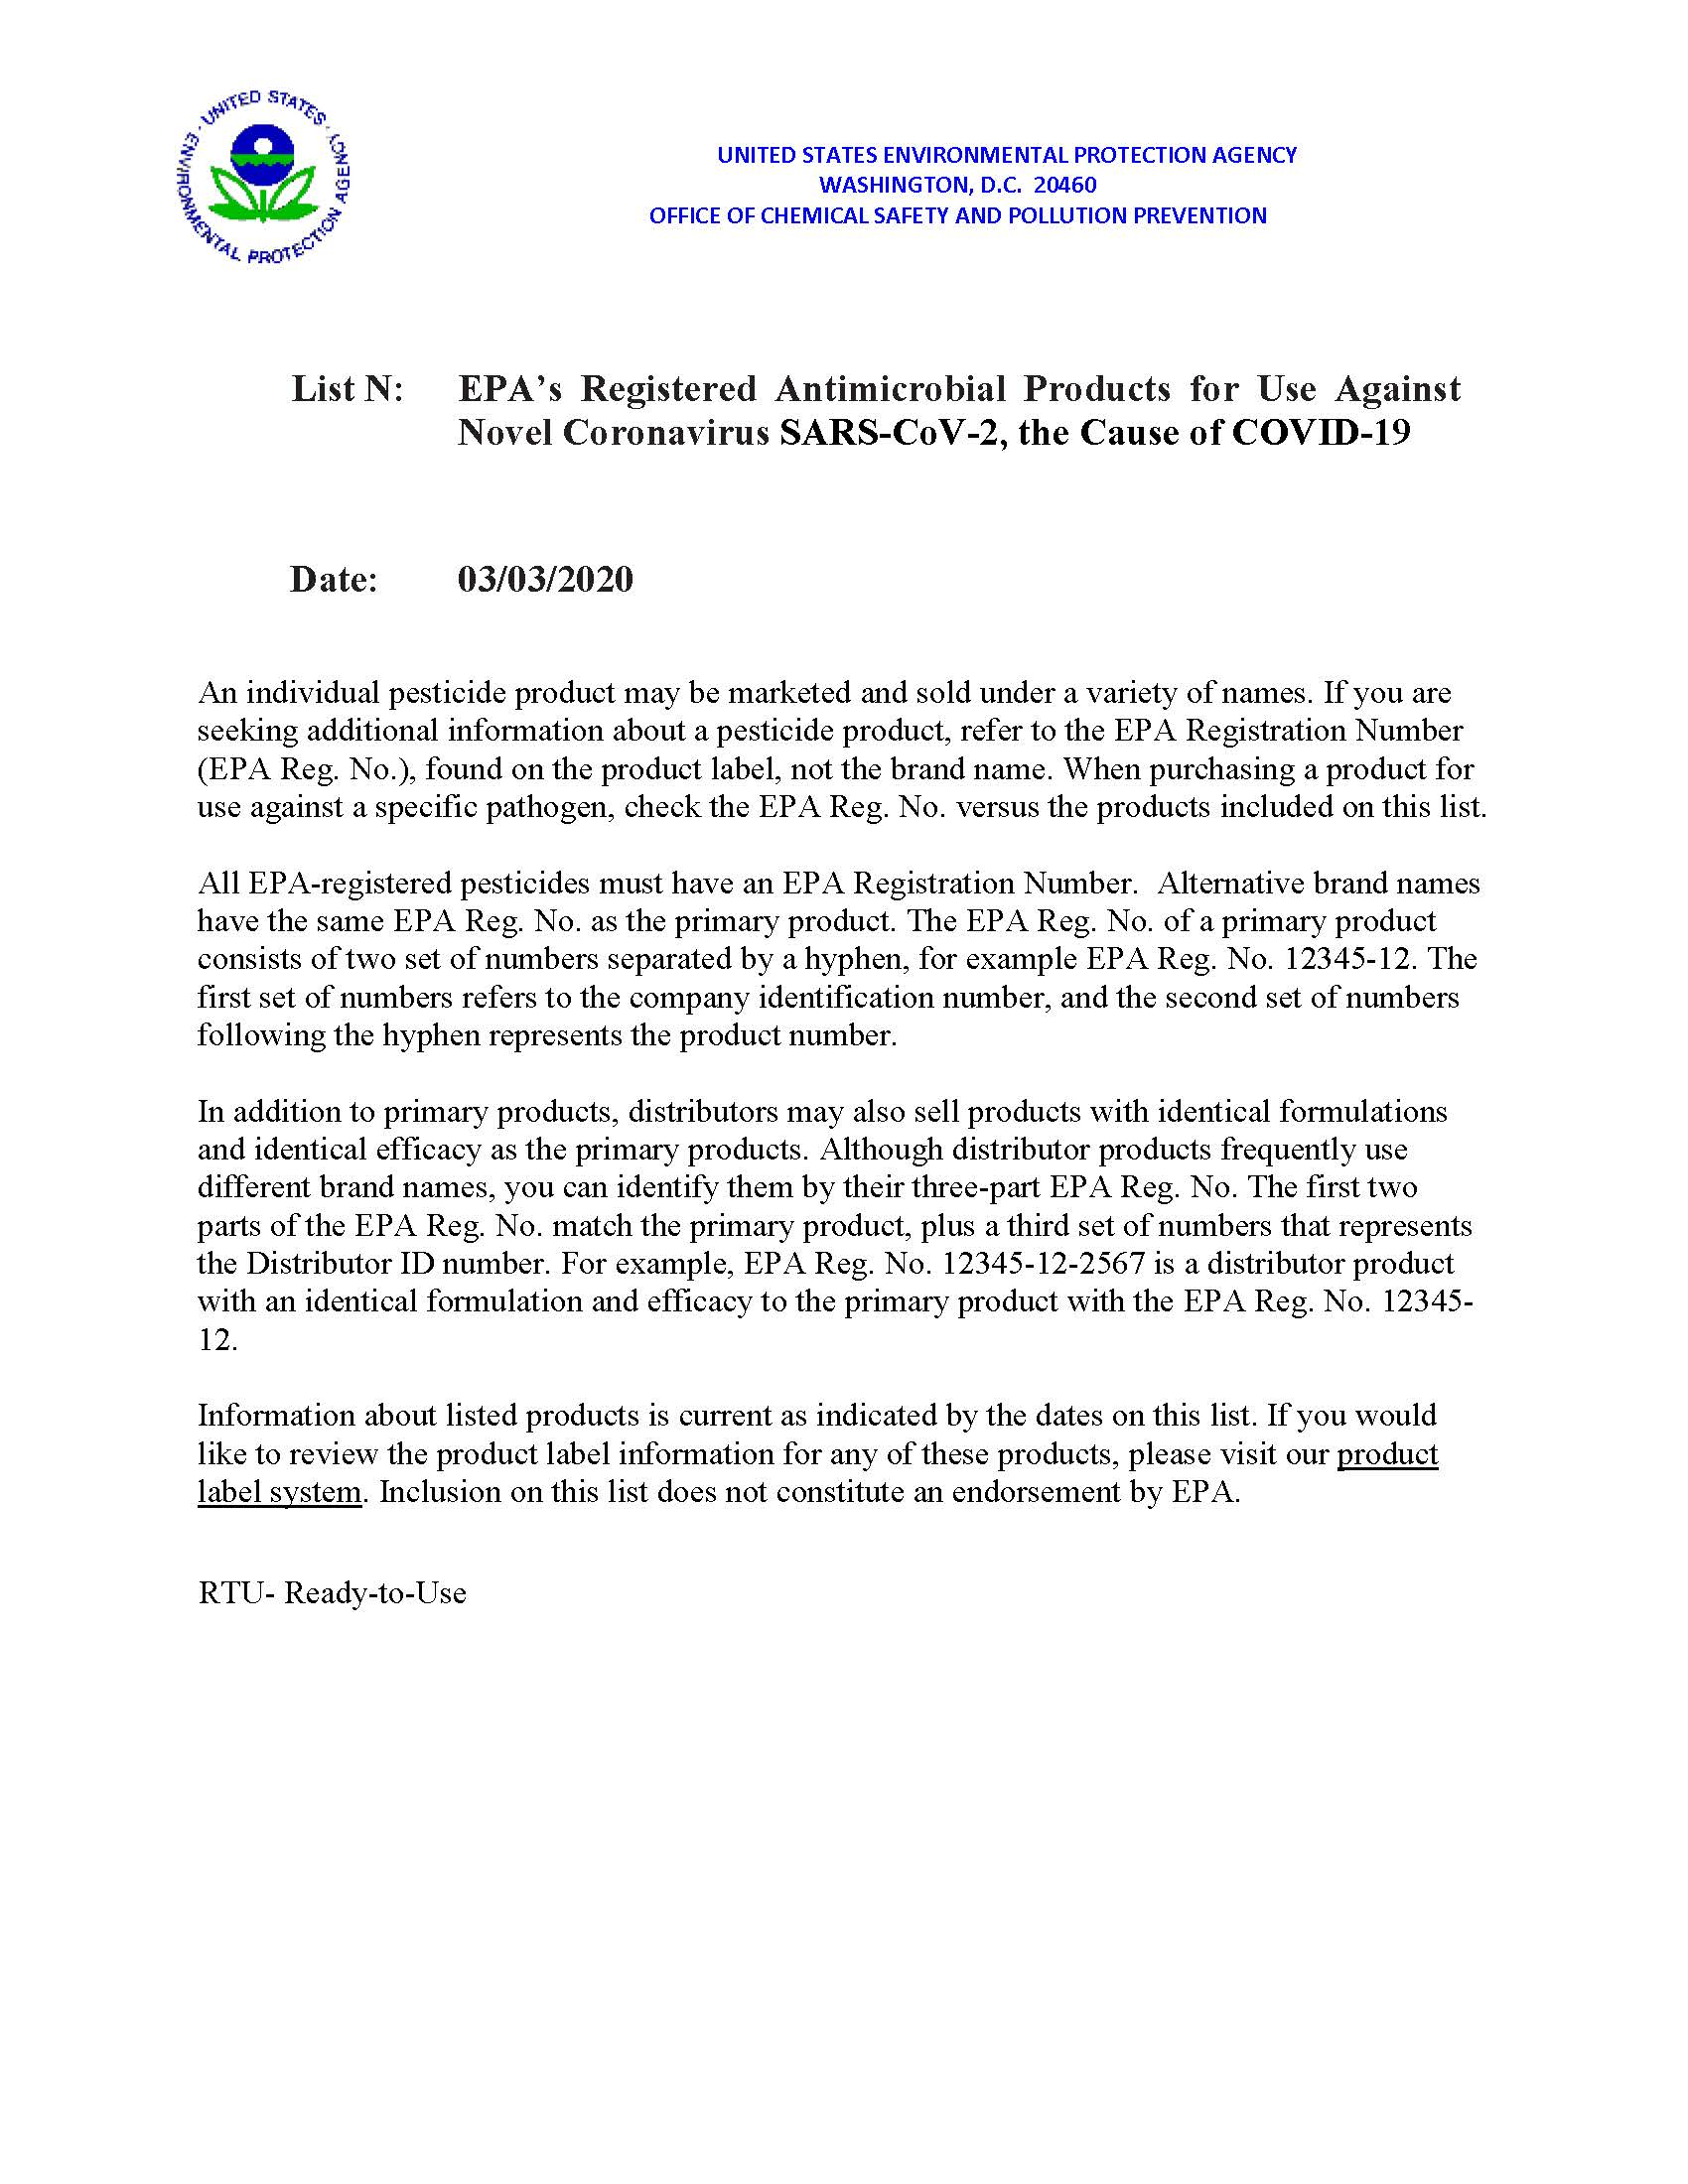 EPA Approved Antimicrobial Products_030320_Page_1